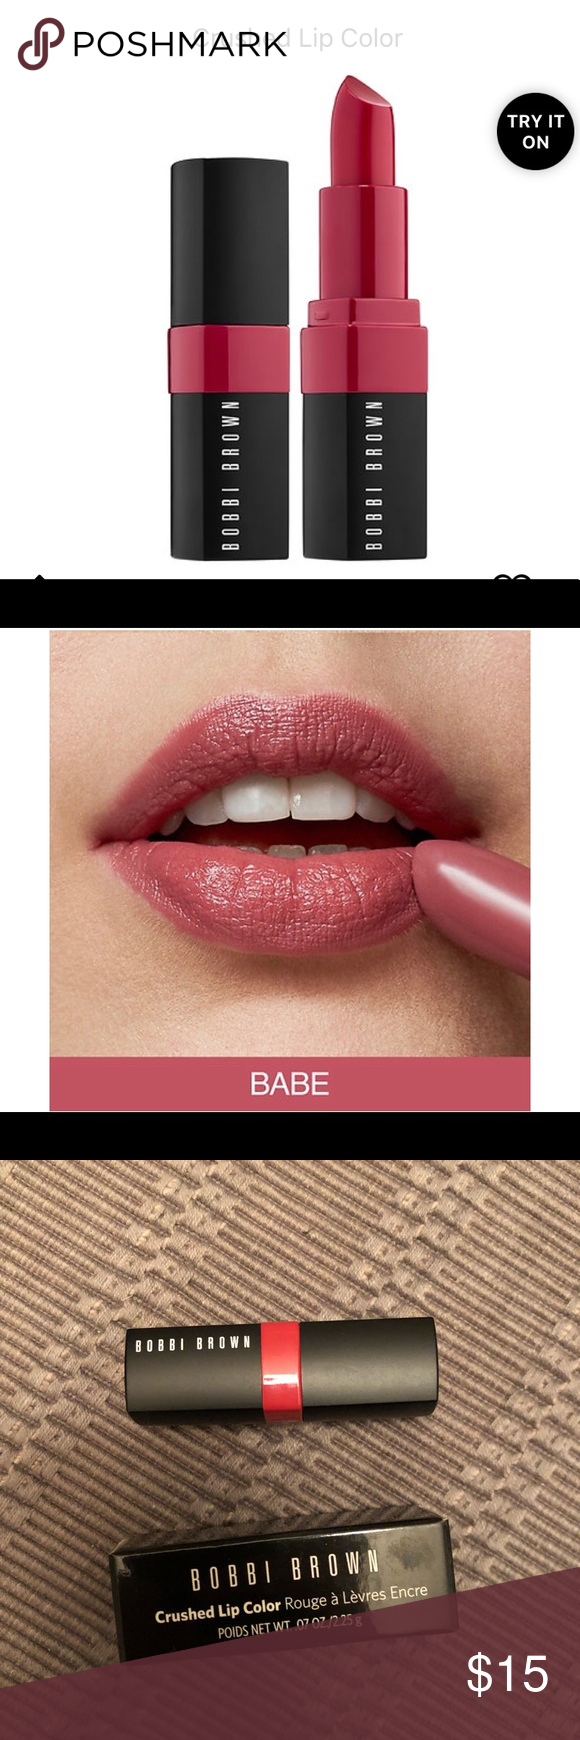 Bobbi Brown Crushed Lip Color In Babe Mini Size Bobbi Brown